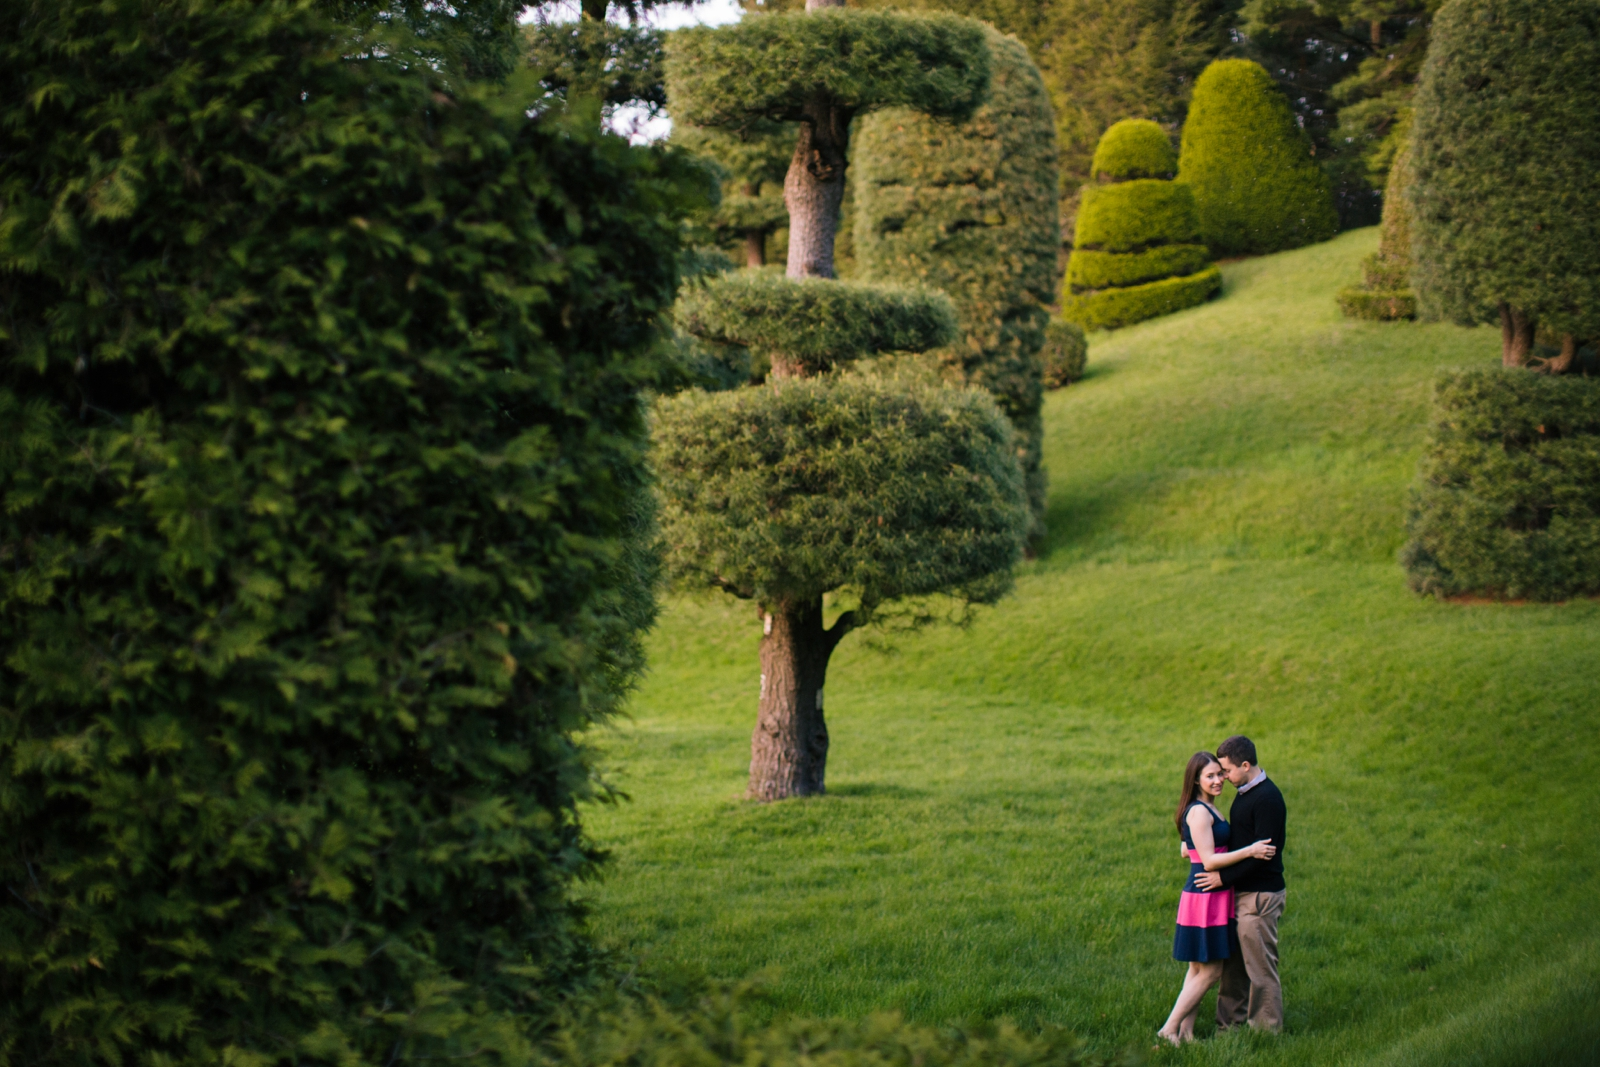 Dreamy engagement portrait in whimsical garden at Wellesley college with golden hour light